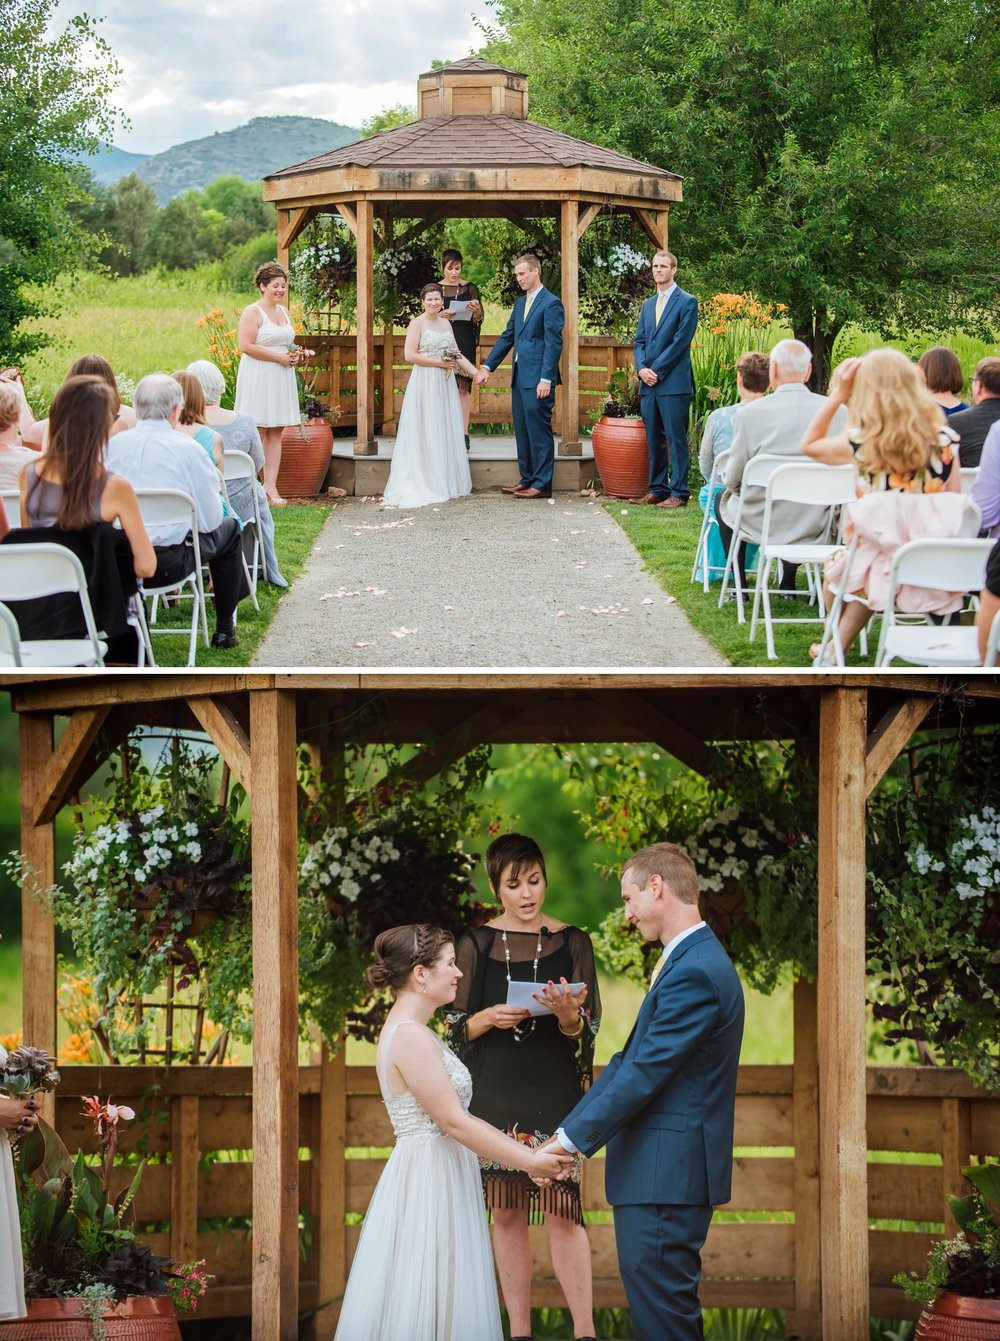 The gazebo at the Denver Botanic Gardens is the most beautiful place for a wedding ceremony. Photo by Maddie Mae Photography